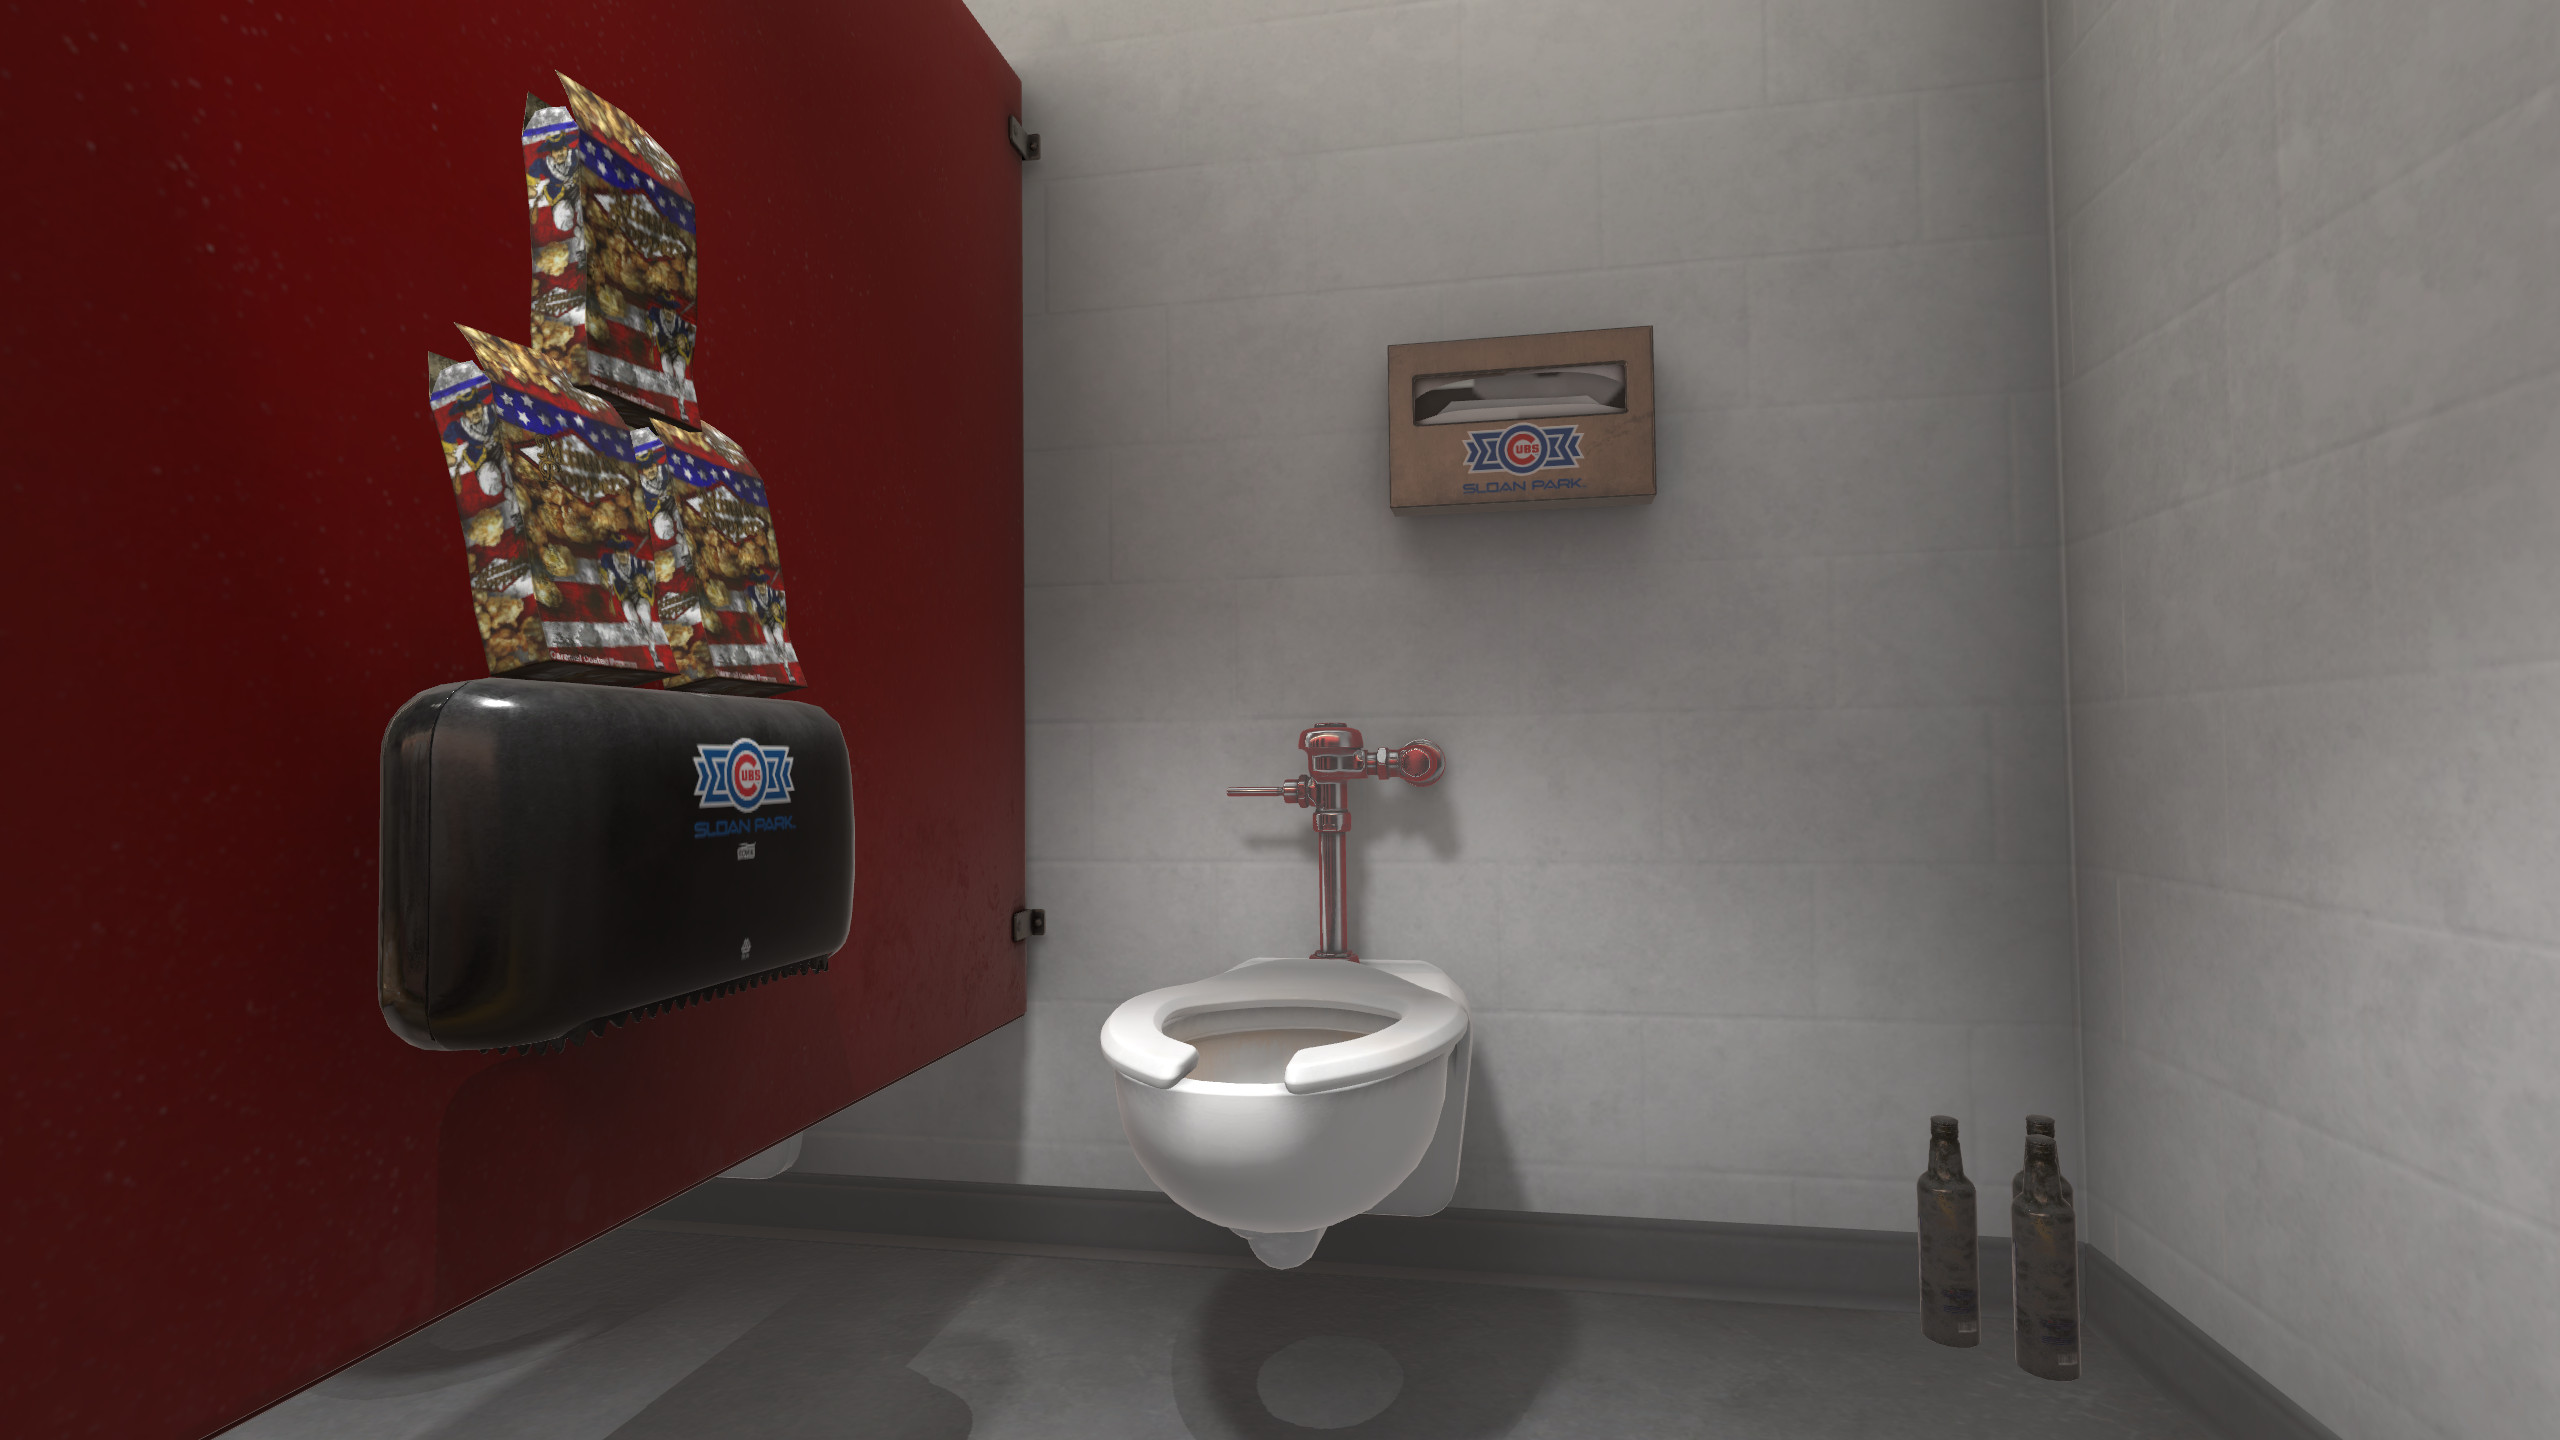 Clean version of the scene above. What the player will see if they are able to clean the entire bathroom stall.